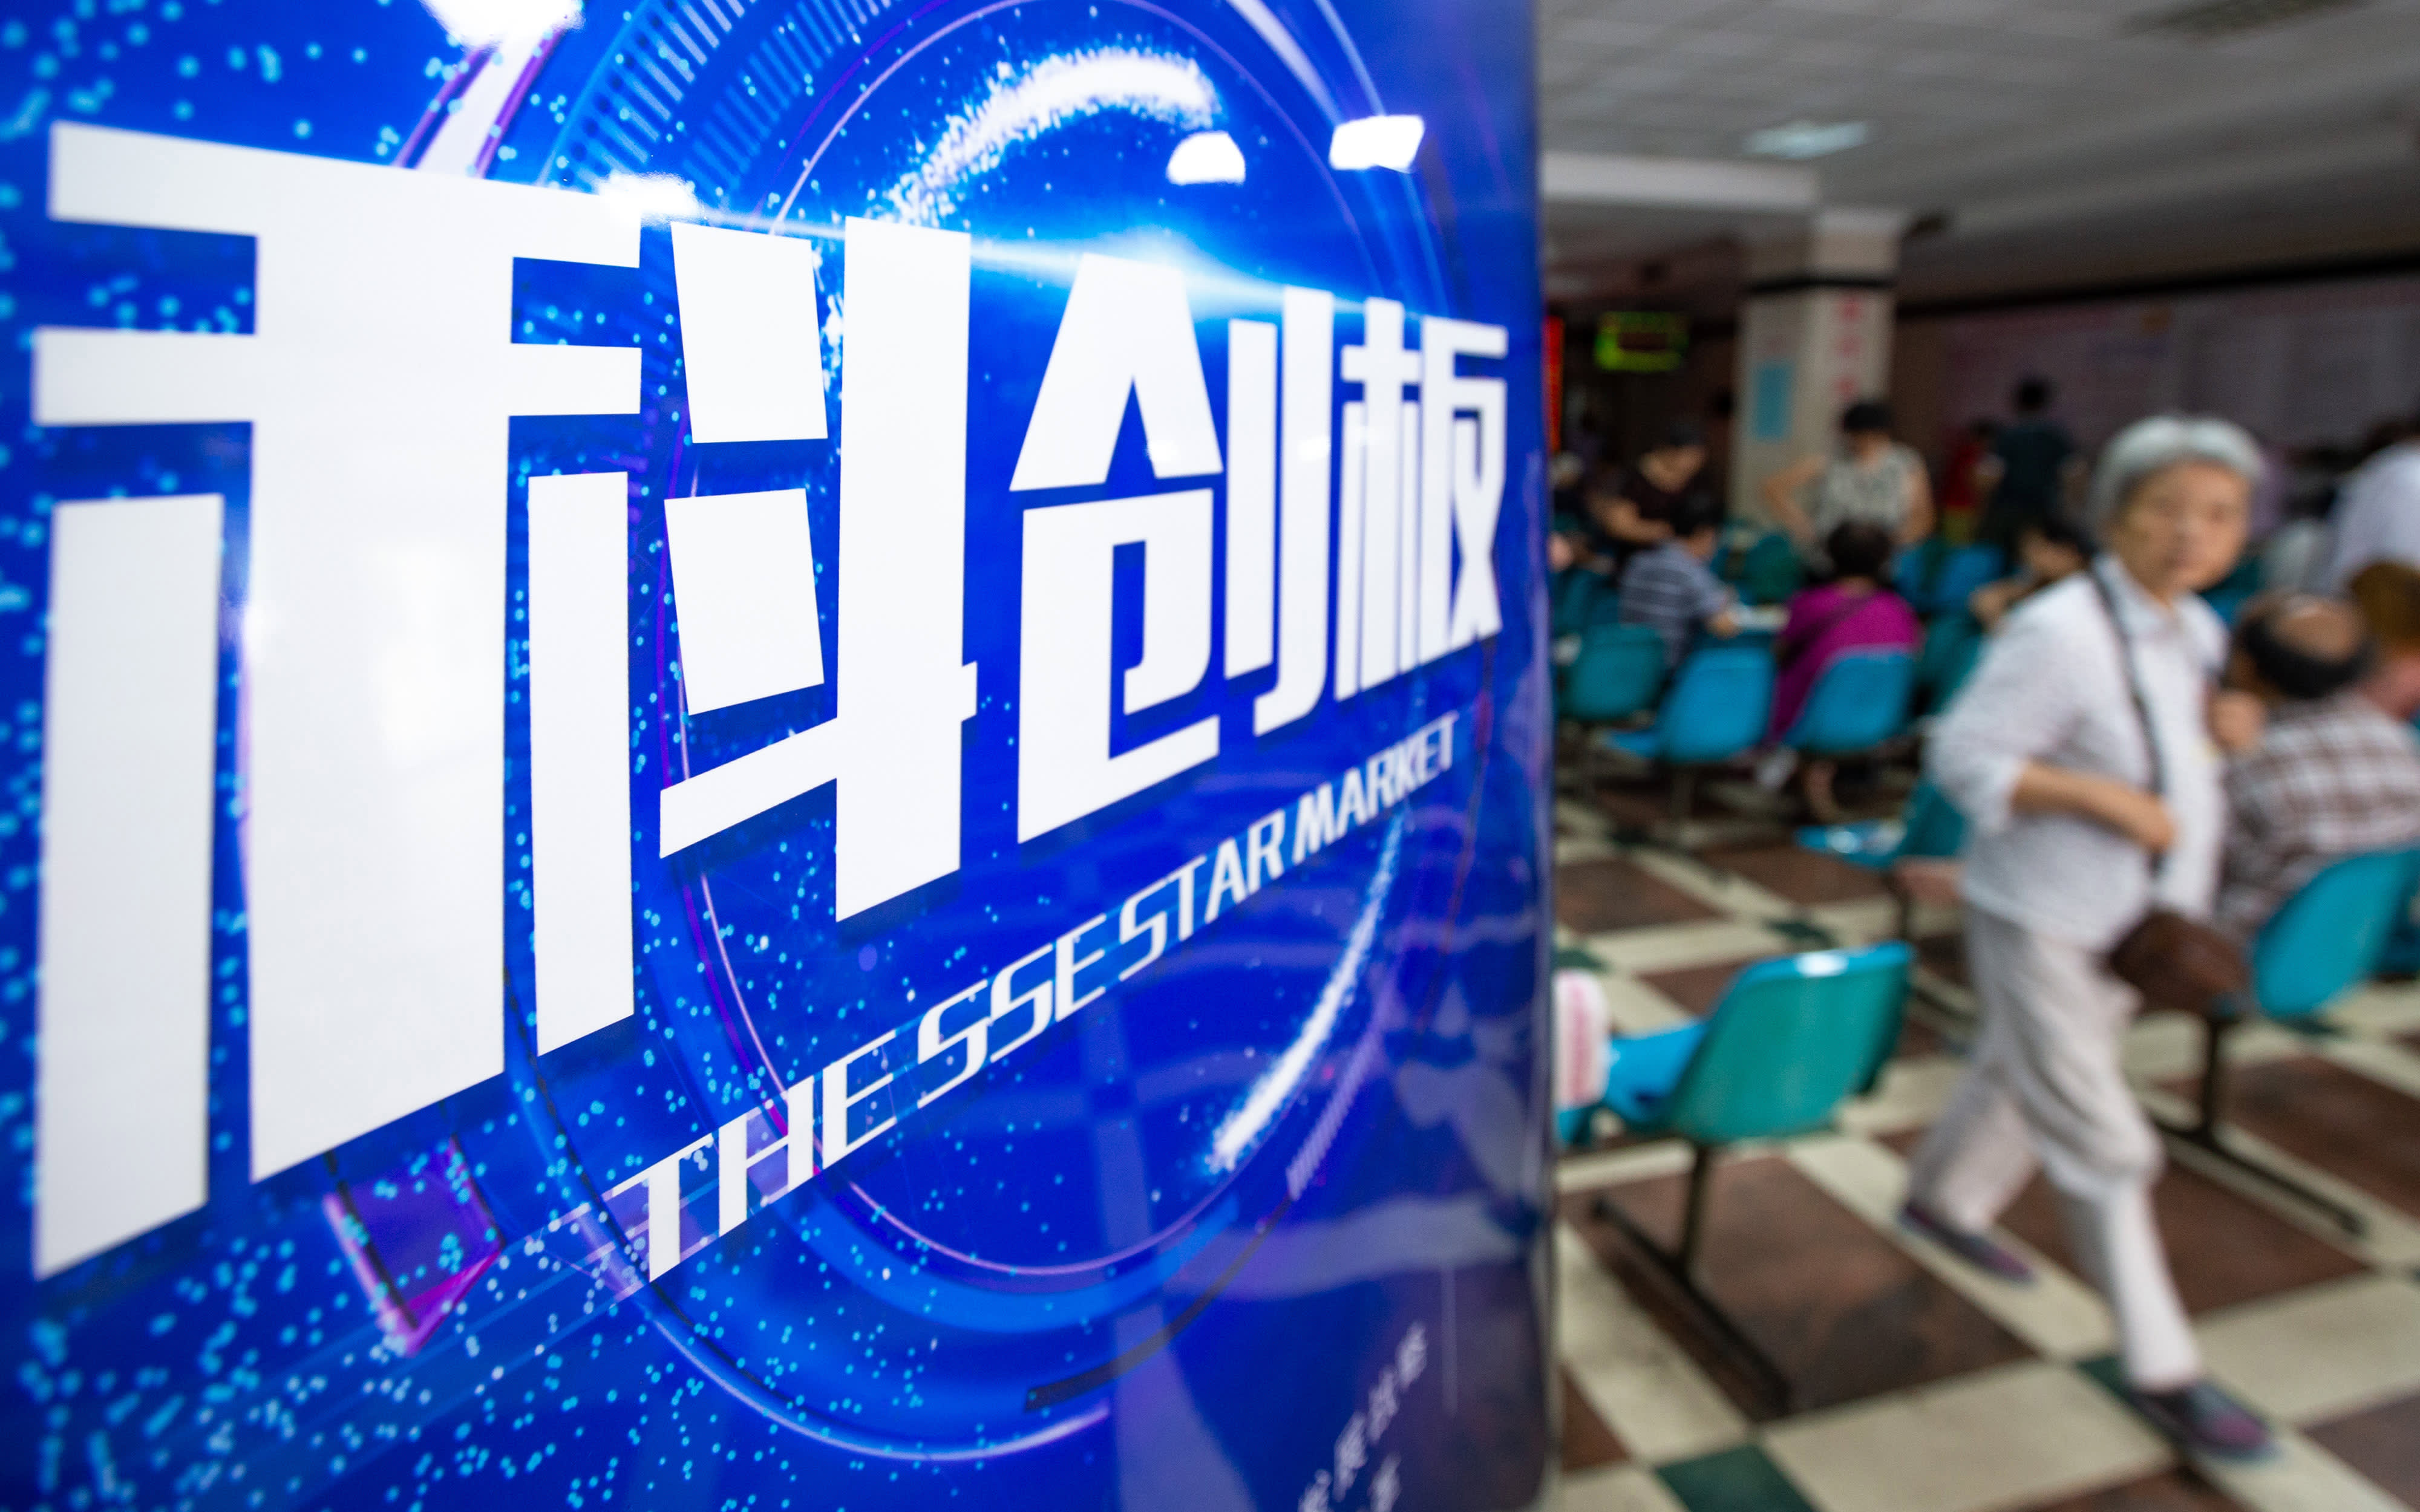 Shares on China's STAR Market after strong public debut